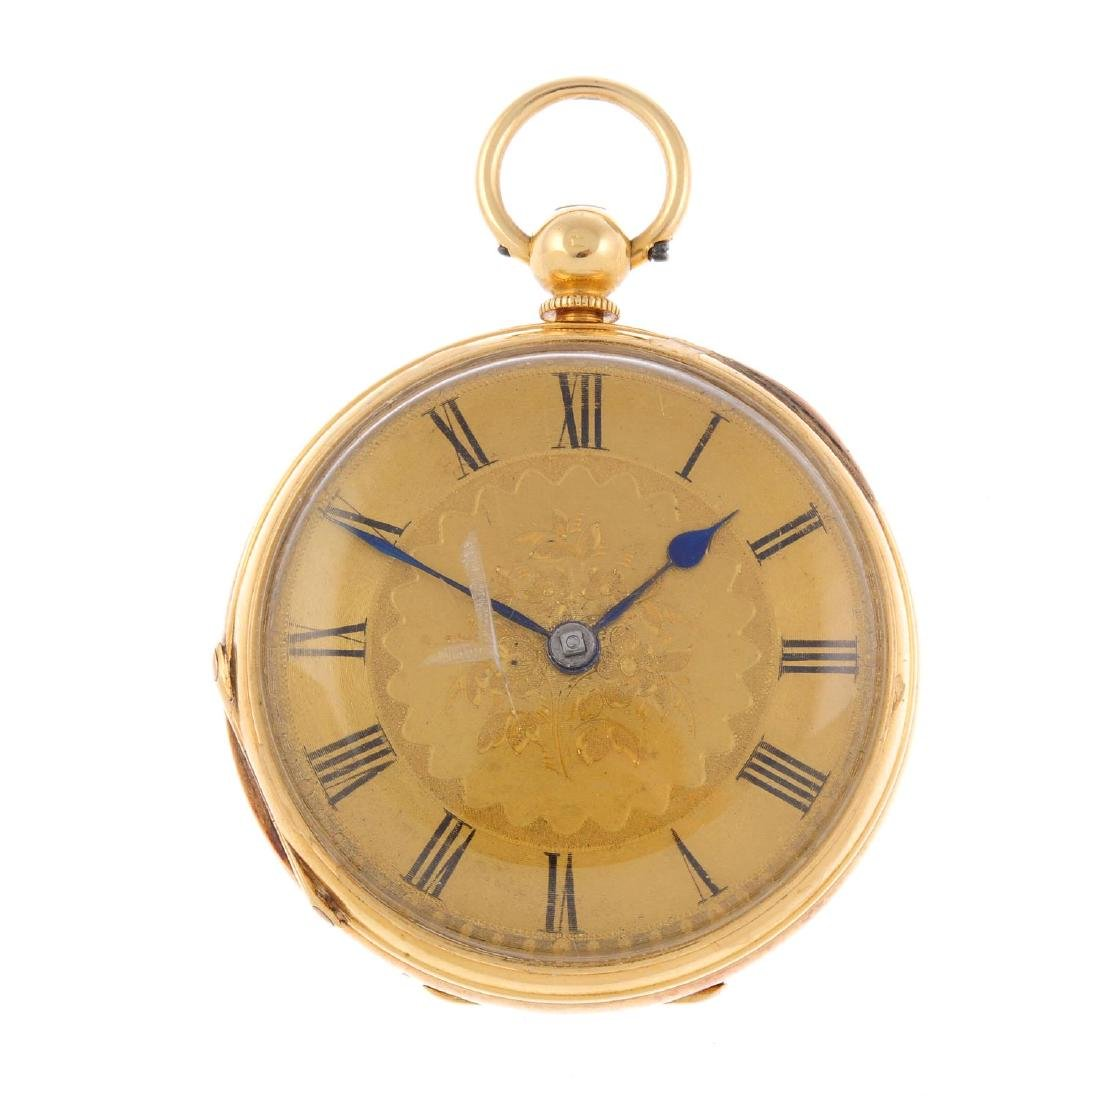 An open face pocket watch by G. Andrews. 18ct yellow